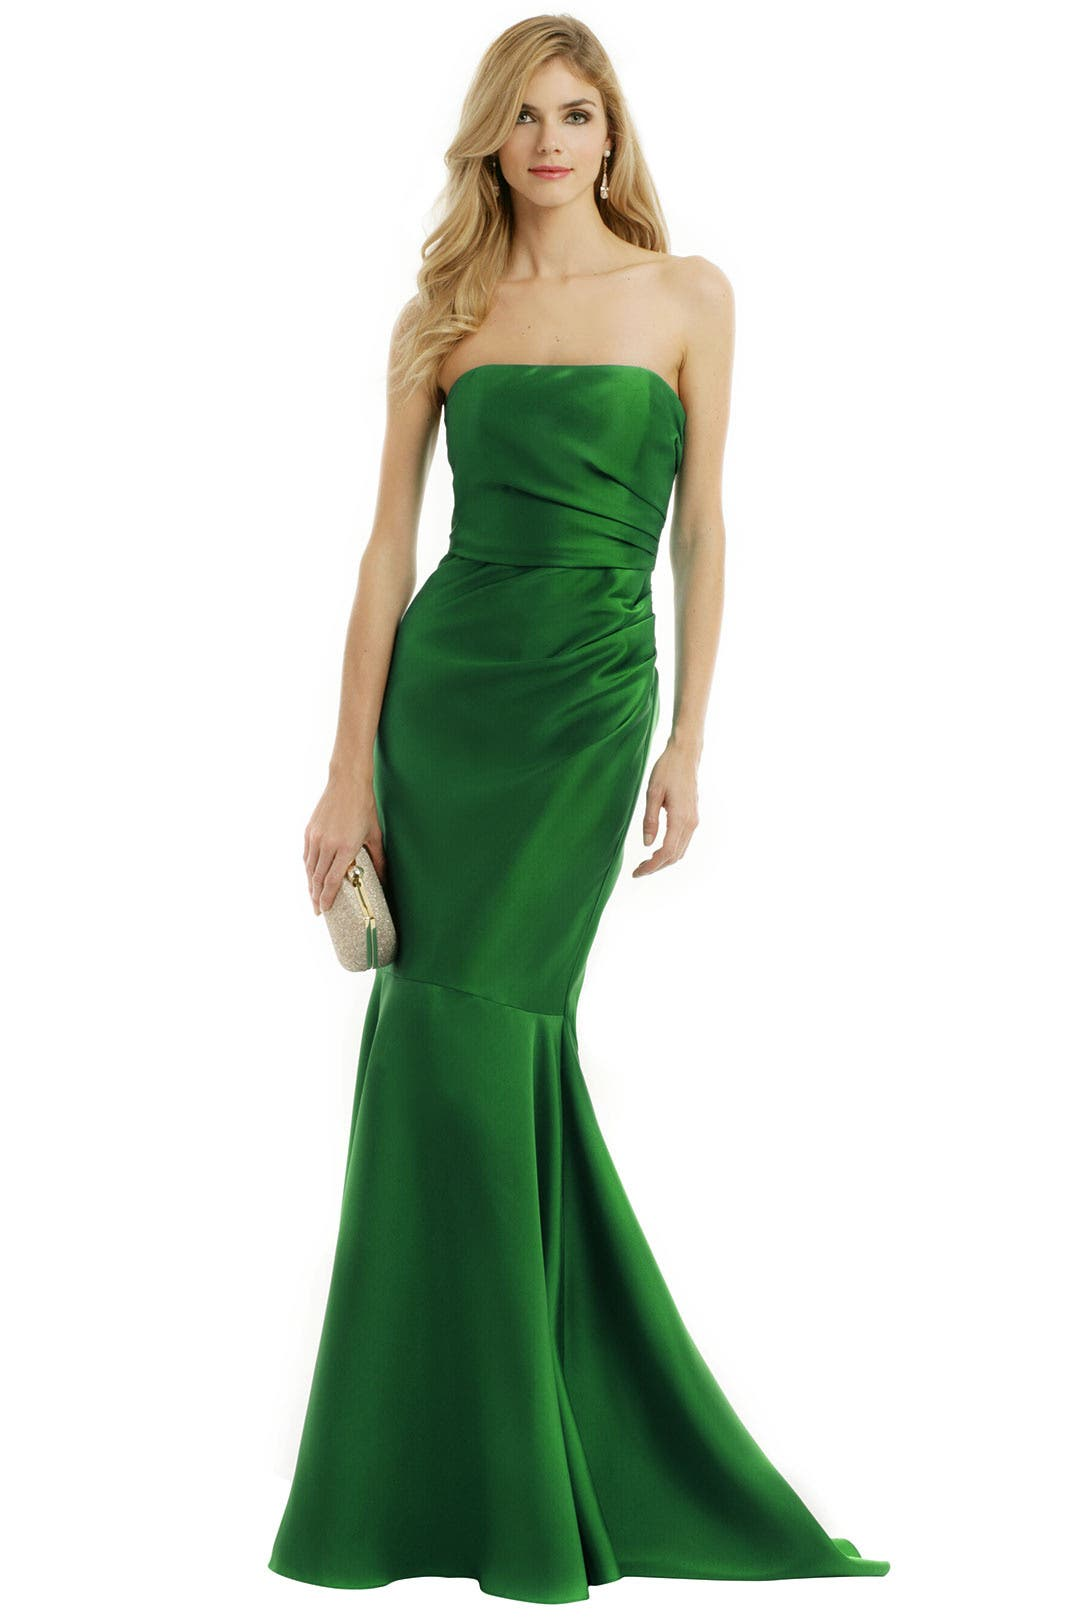 Total Knock Out Gown by Badgley Mischka for $74 | Rent the Runway